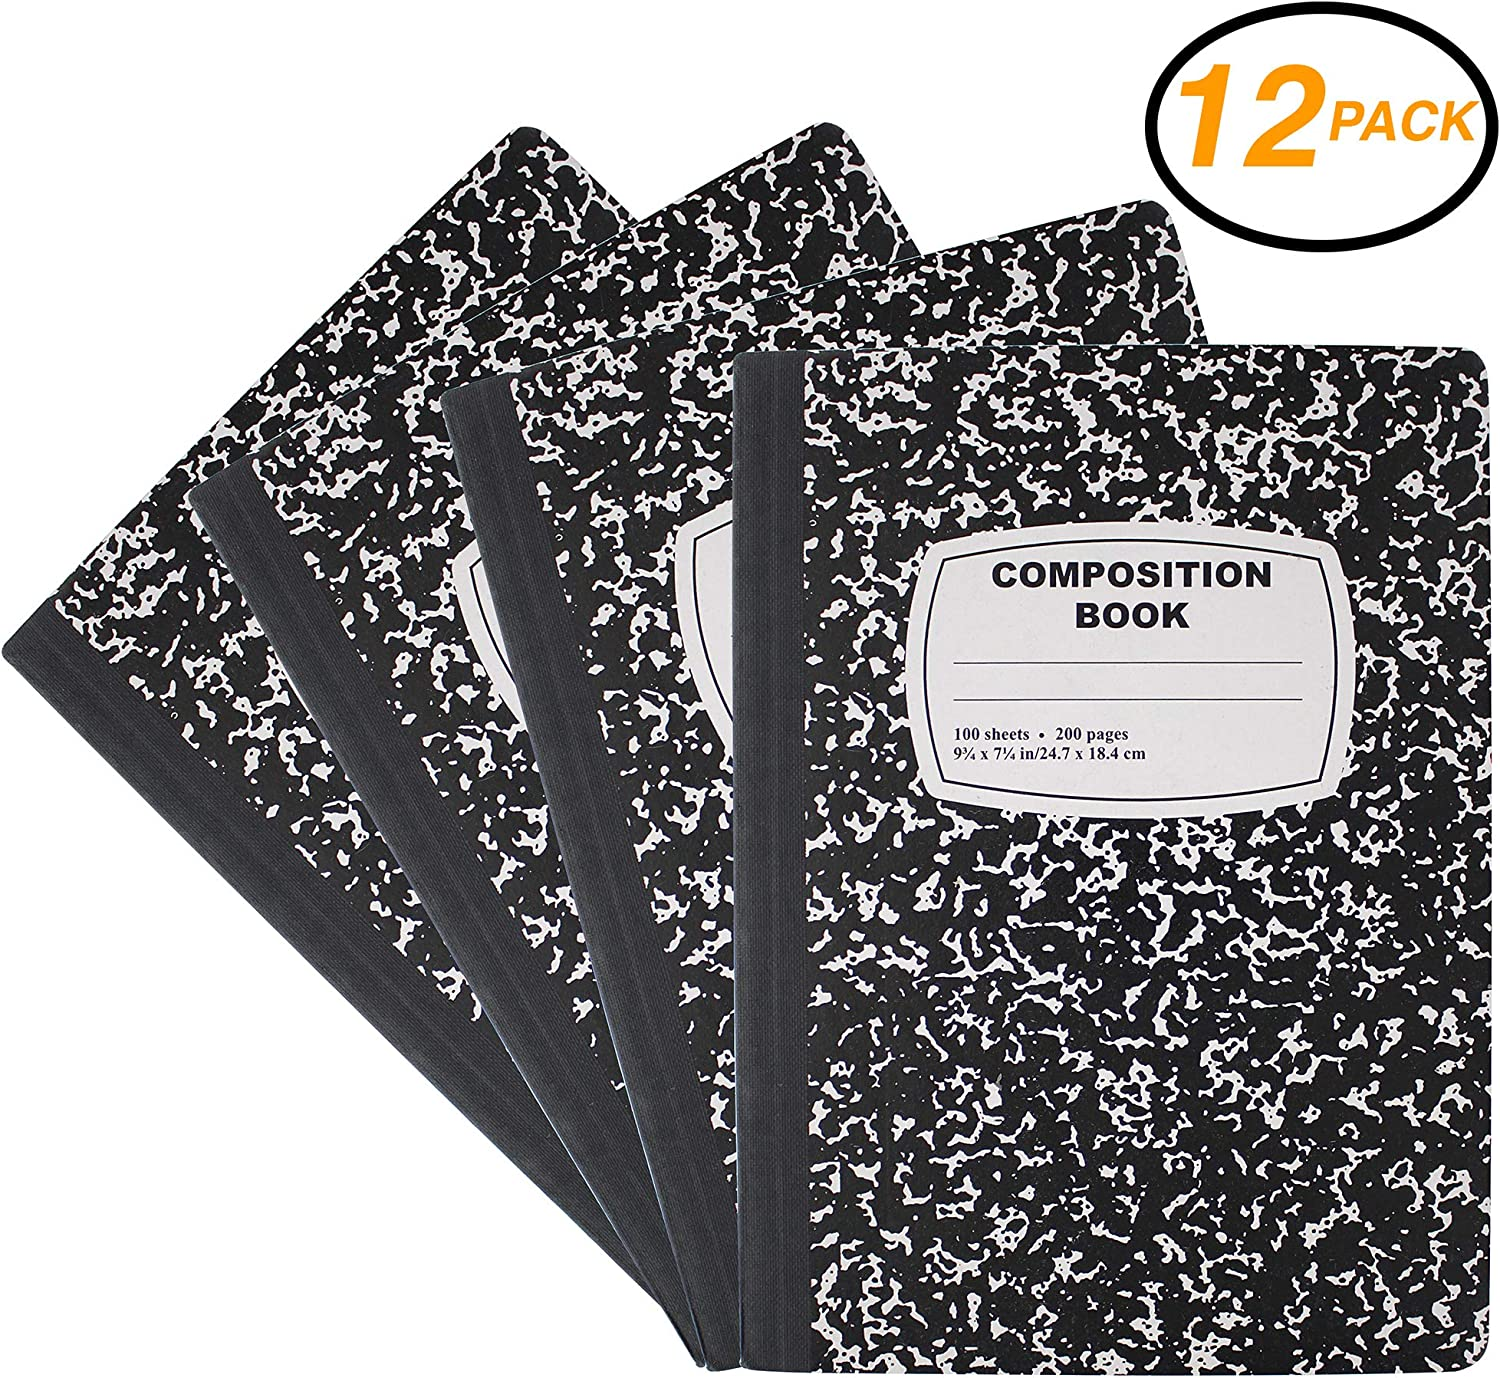 Emraw Black /& White Marble Style Cover Composition Book with 100 Sheets of Wide Ruled White Paper 12 Pack